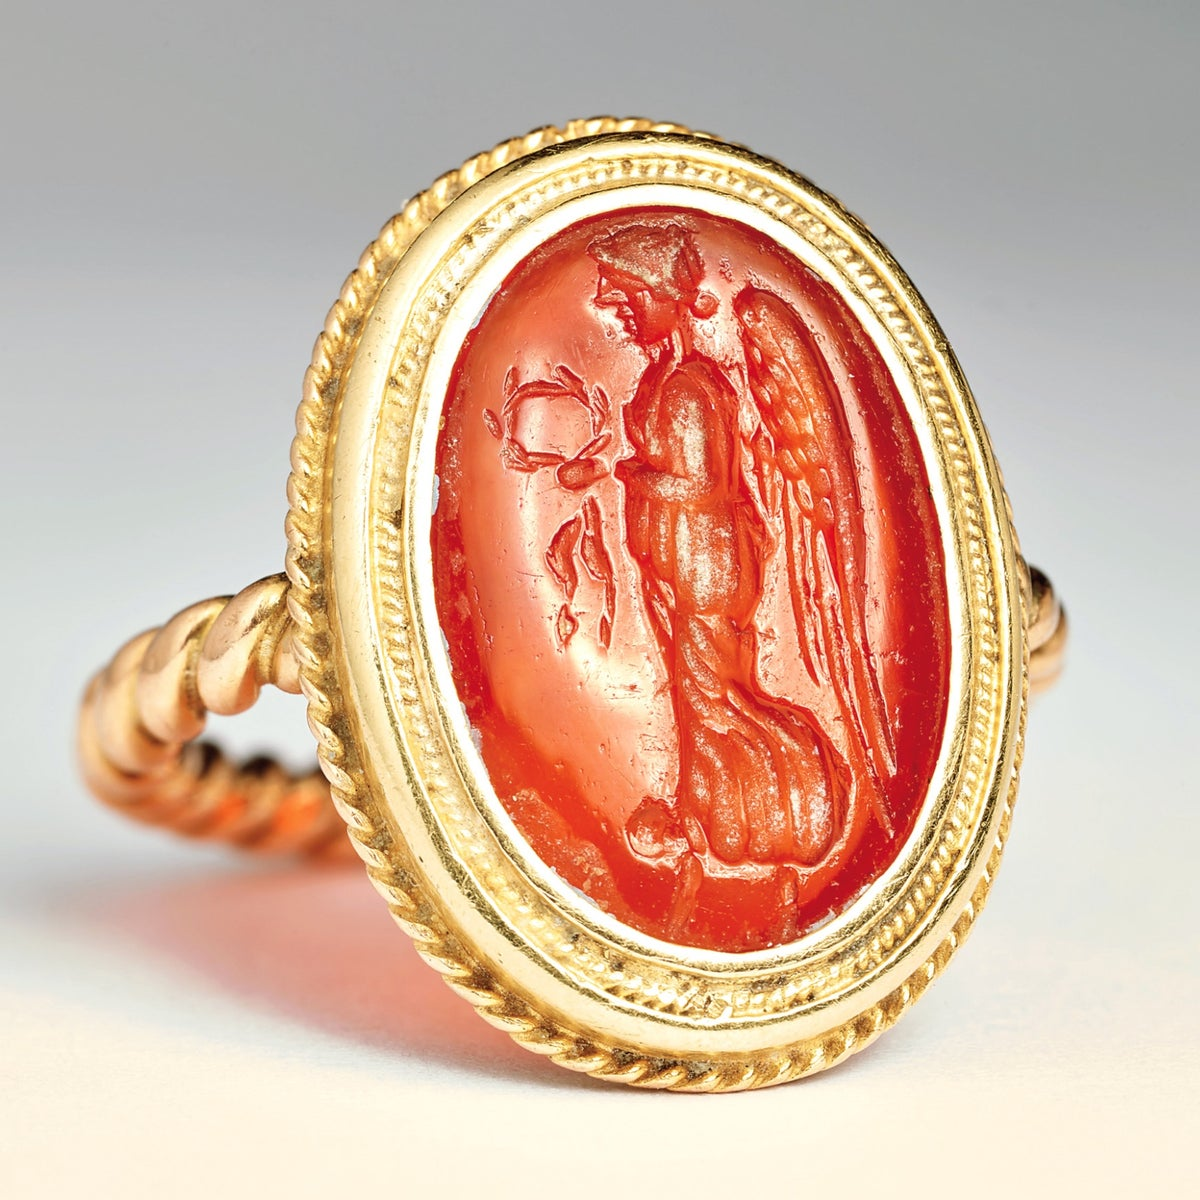 The ring bearing the image of Nike, the goddess of victory, bequeathed to the Israel Museum by Eva Rosenfeld. The magic began to do its work.